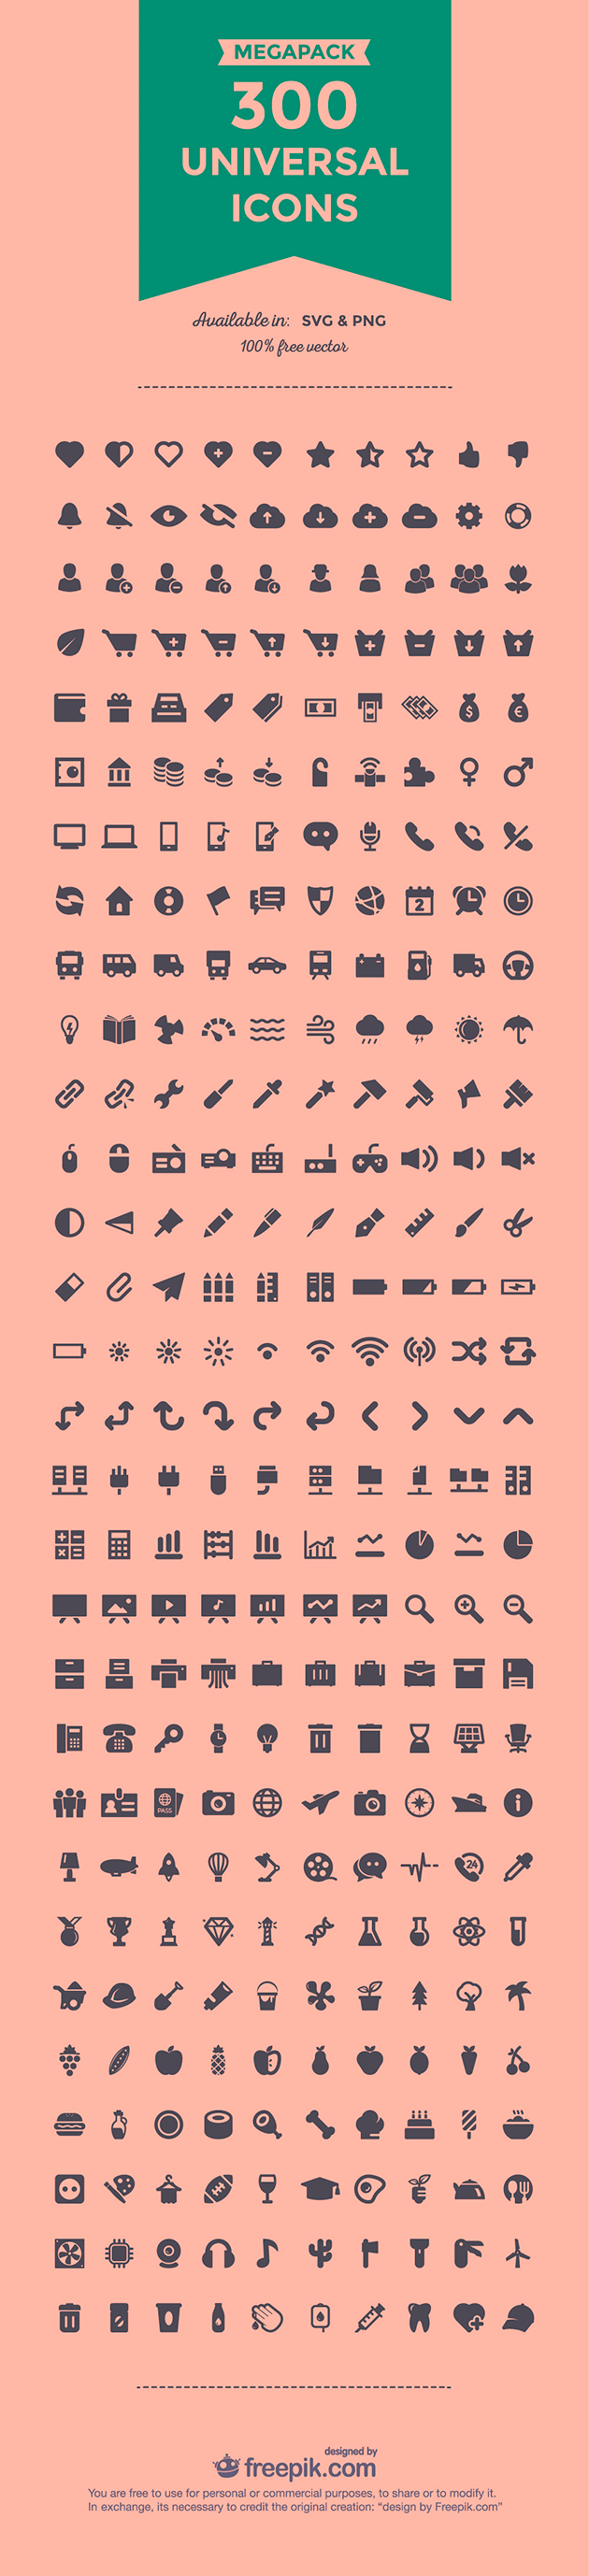 300 Universal icons 01 thumb The best design articles from 2015